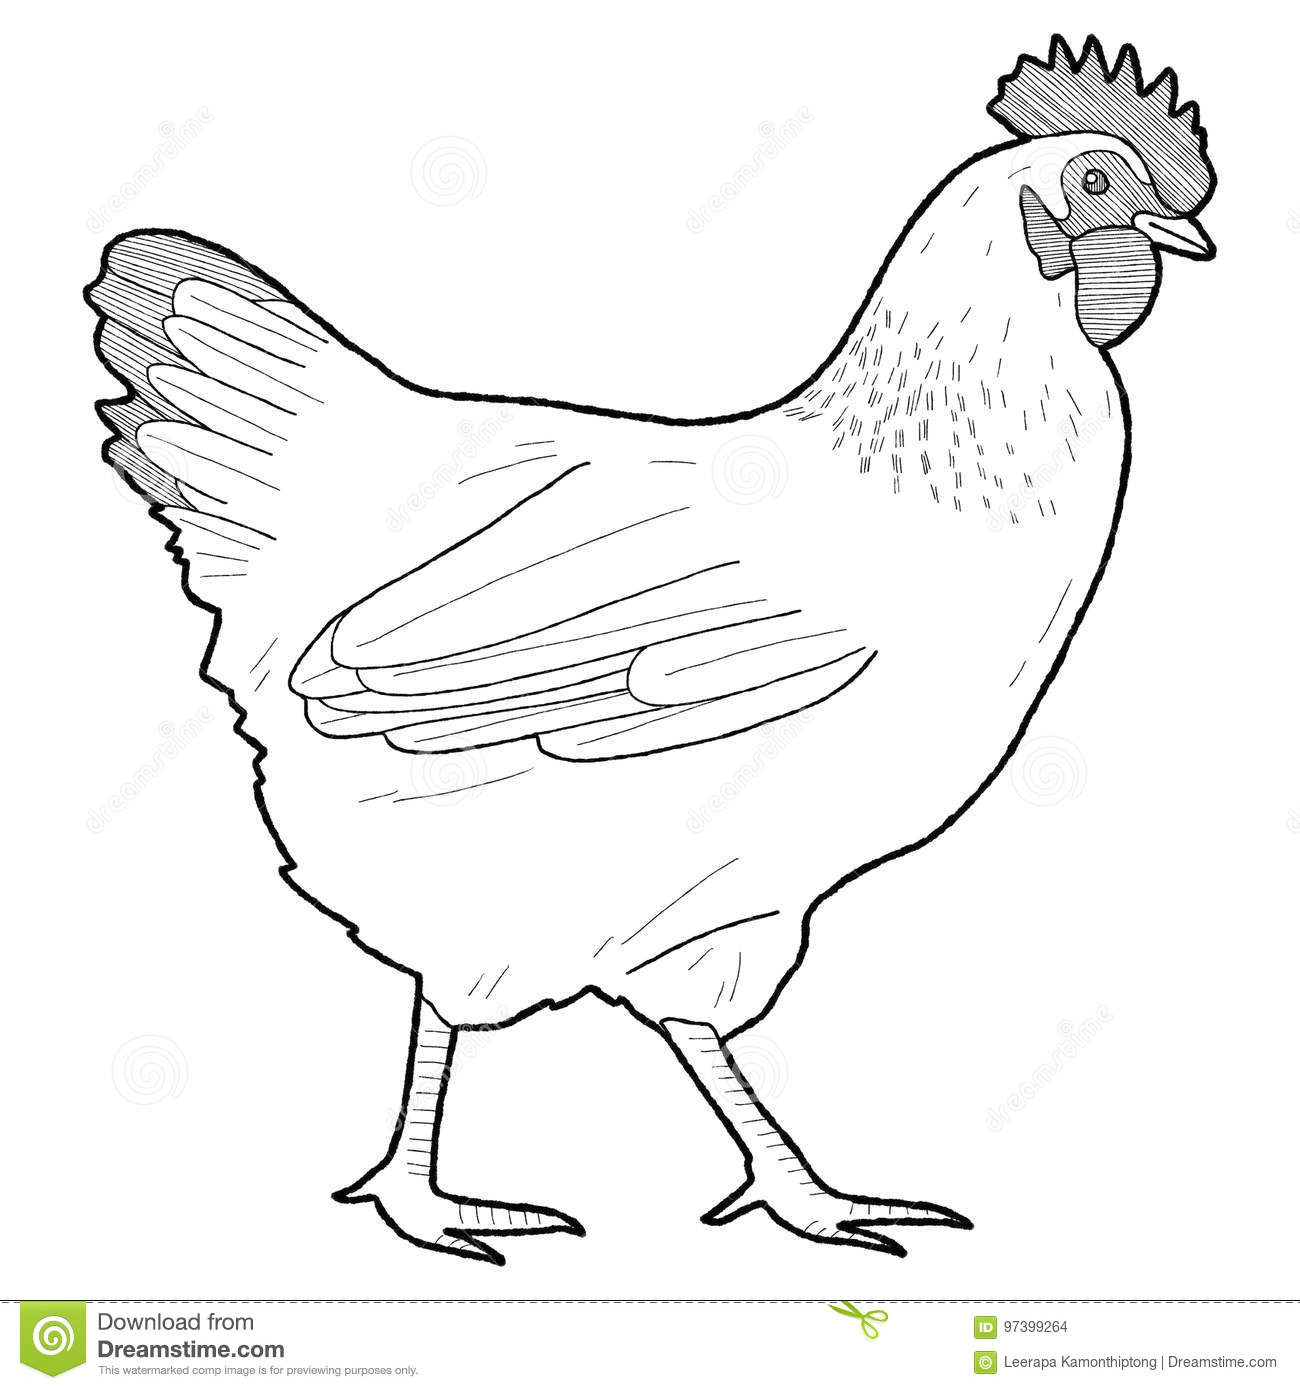 how to draw a chicken how to draw a cute chicken in a few easy steps easy draw a chicken to how